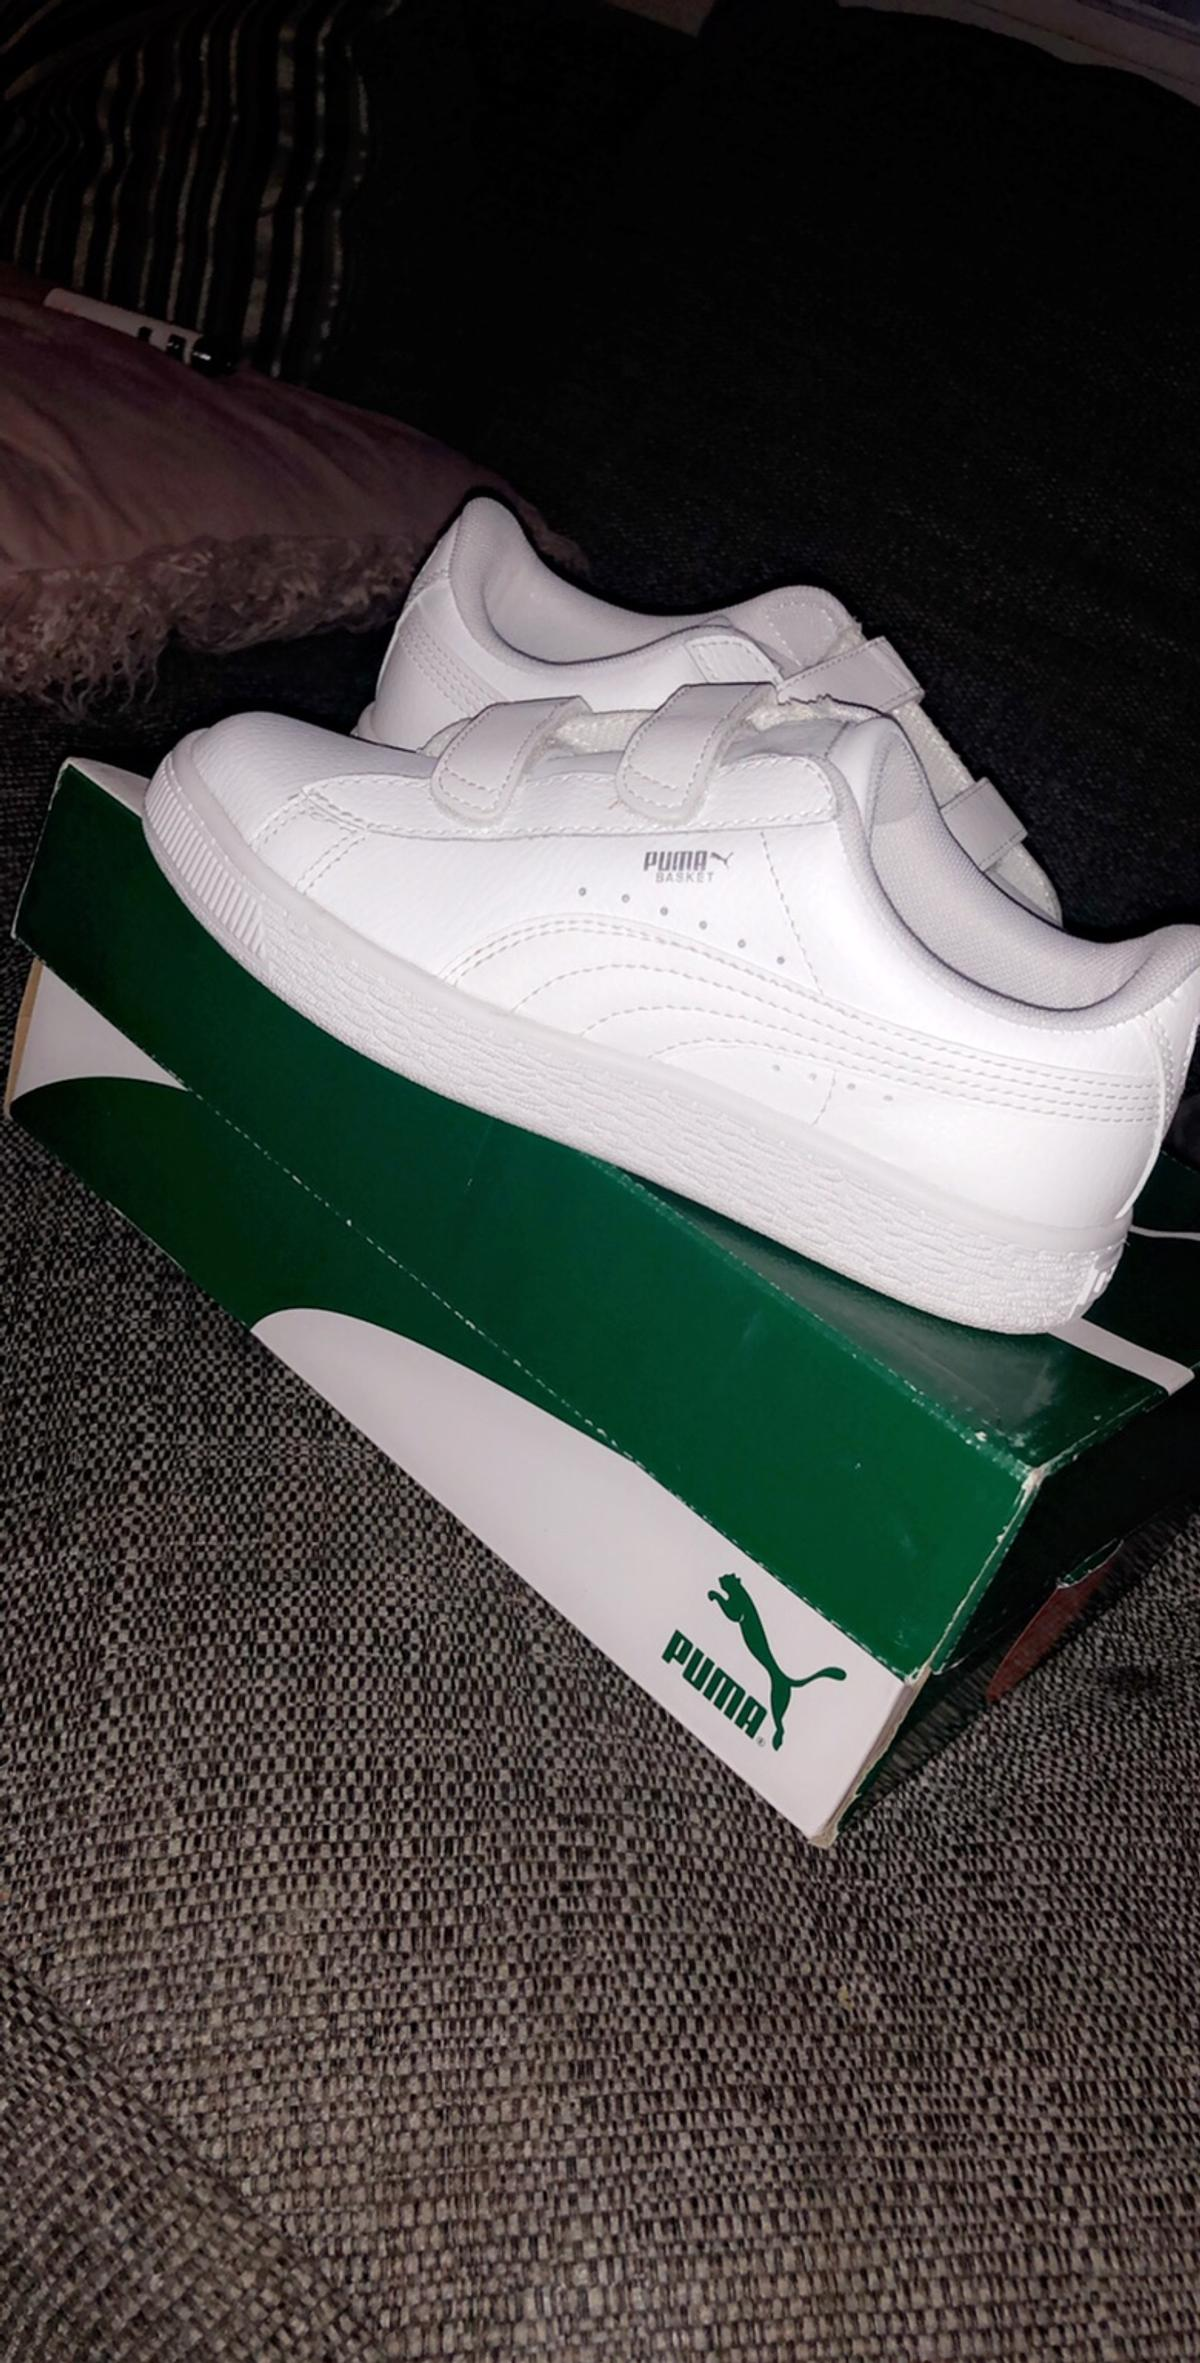 reputable site 34254 594a9 Puma basket size 2 with box never been on